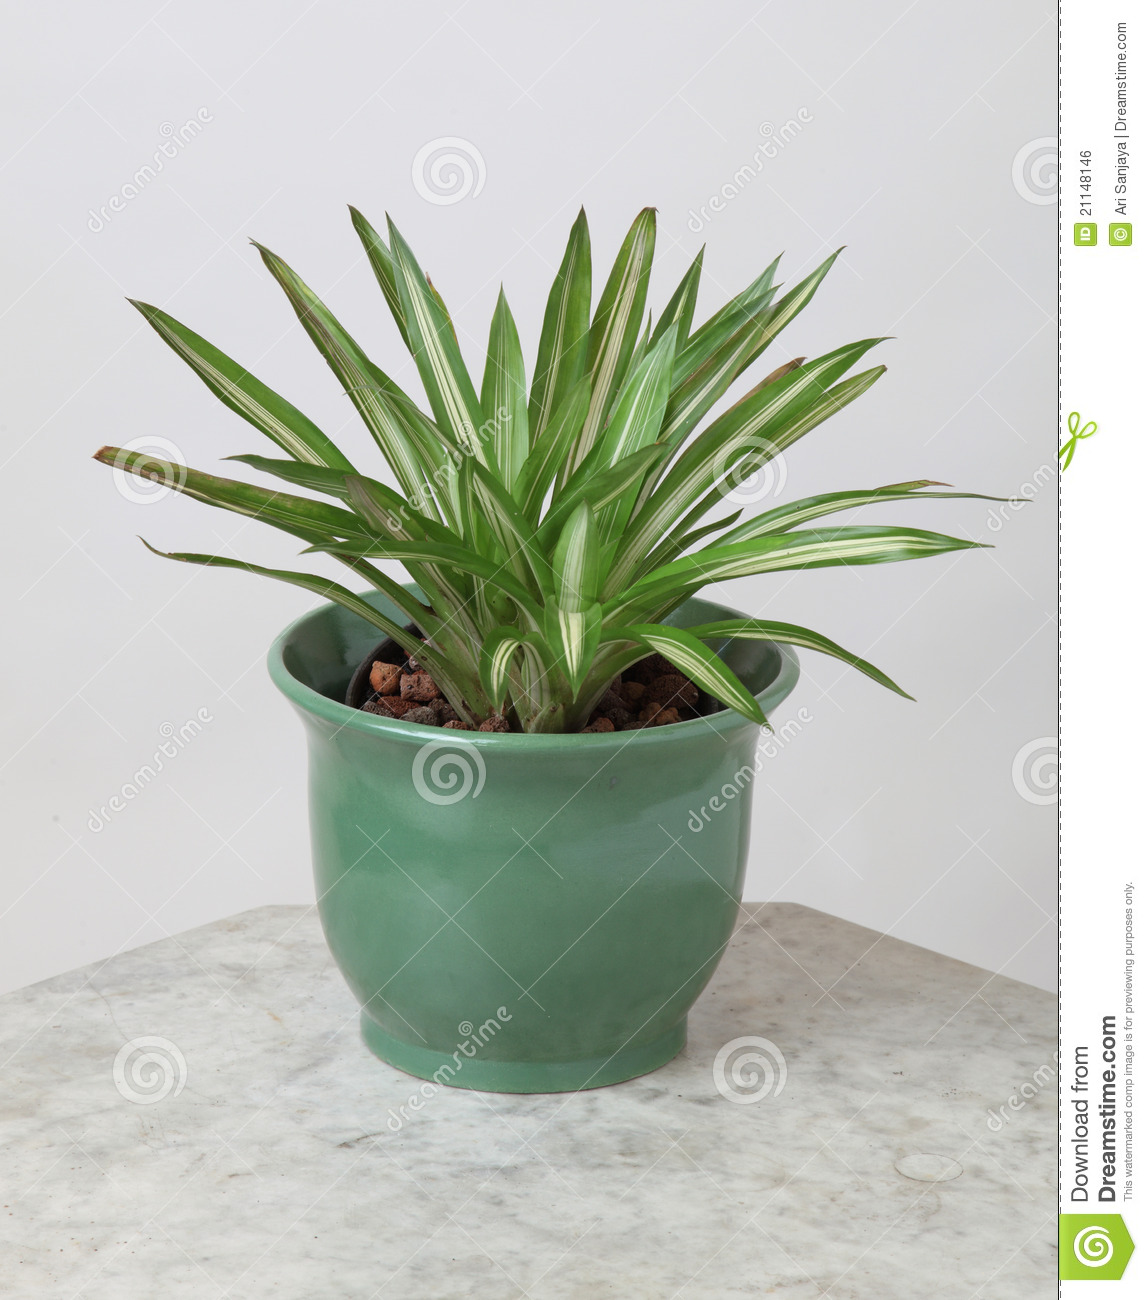 Plantas decorativas foto de stock imagem de jardinar for 5 plantas decorativas